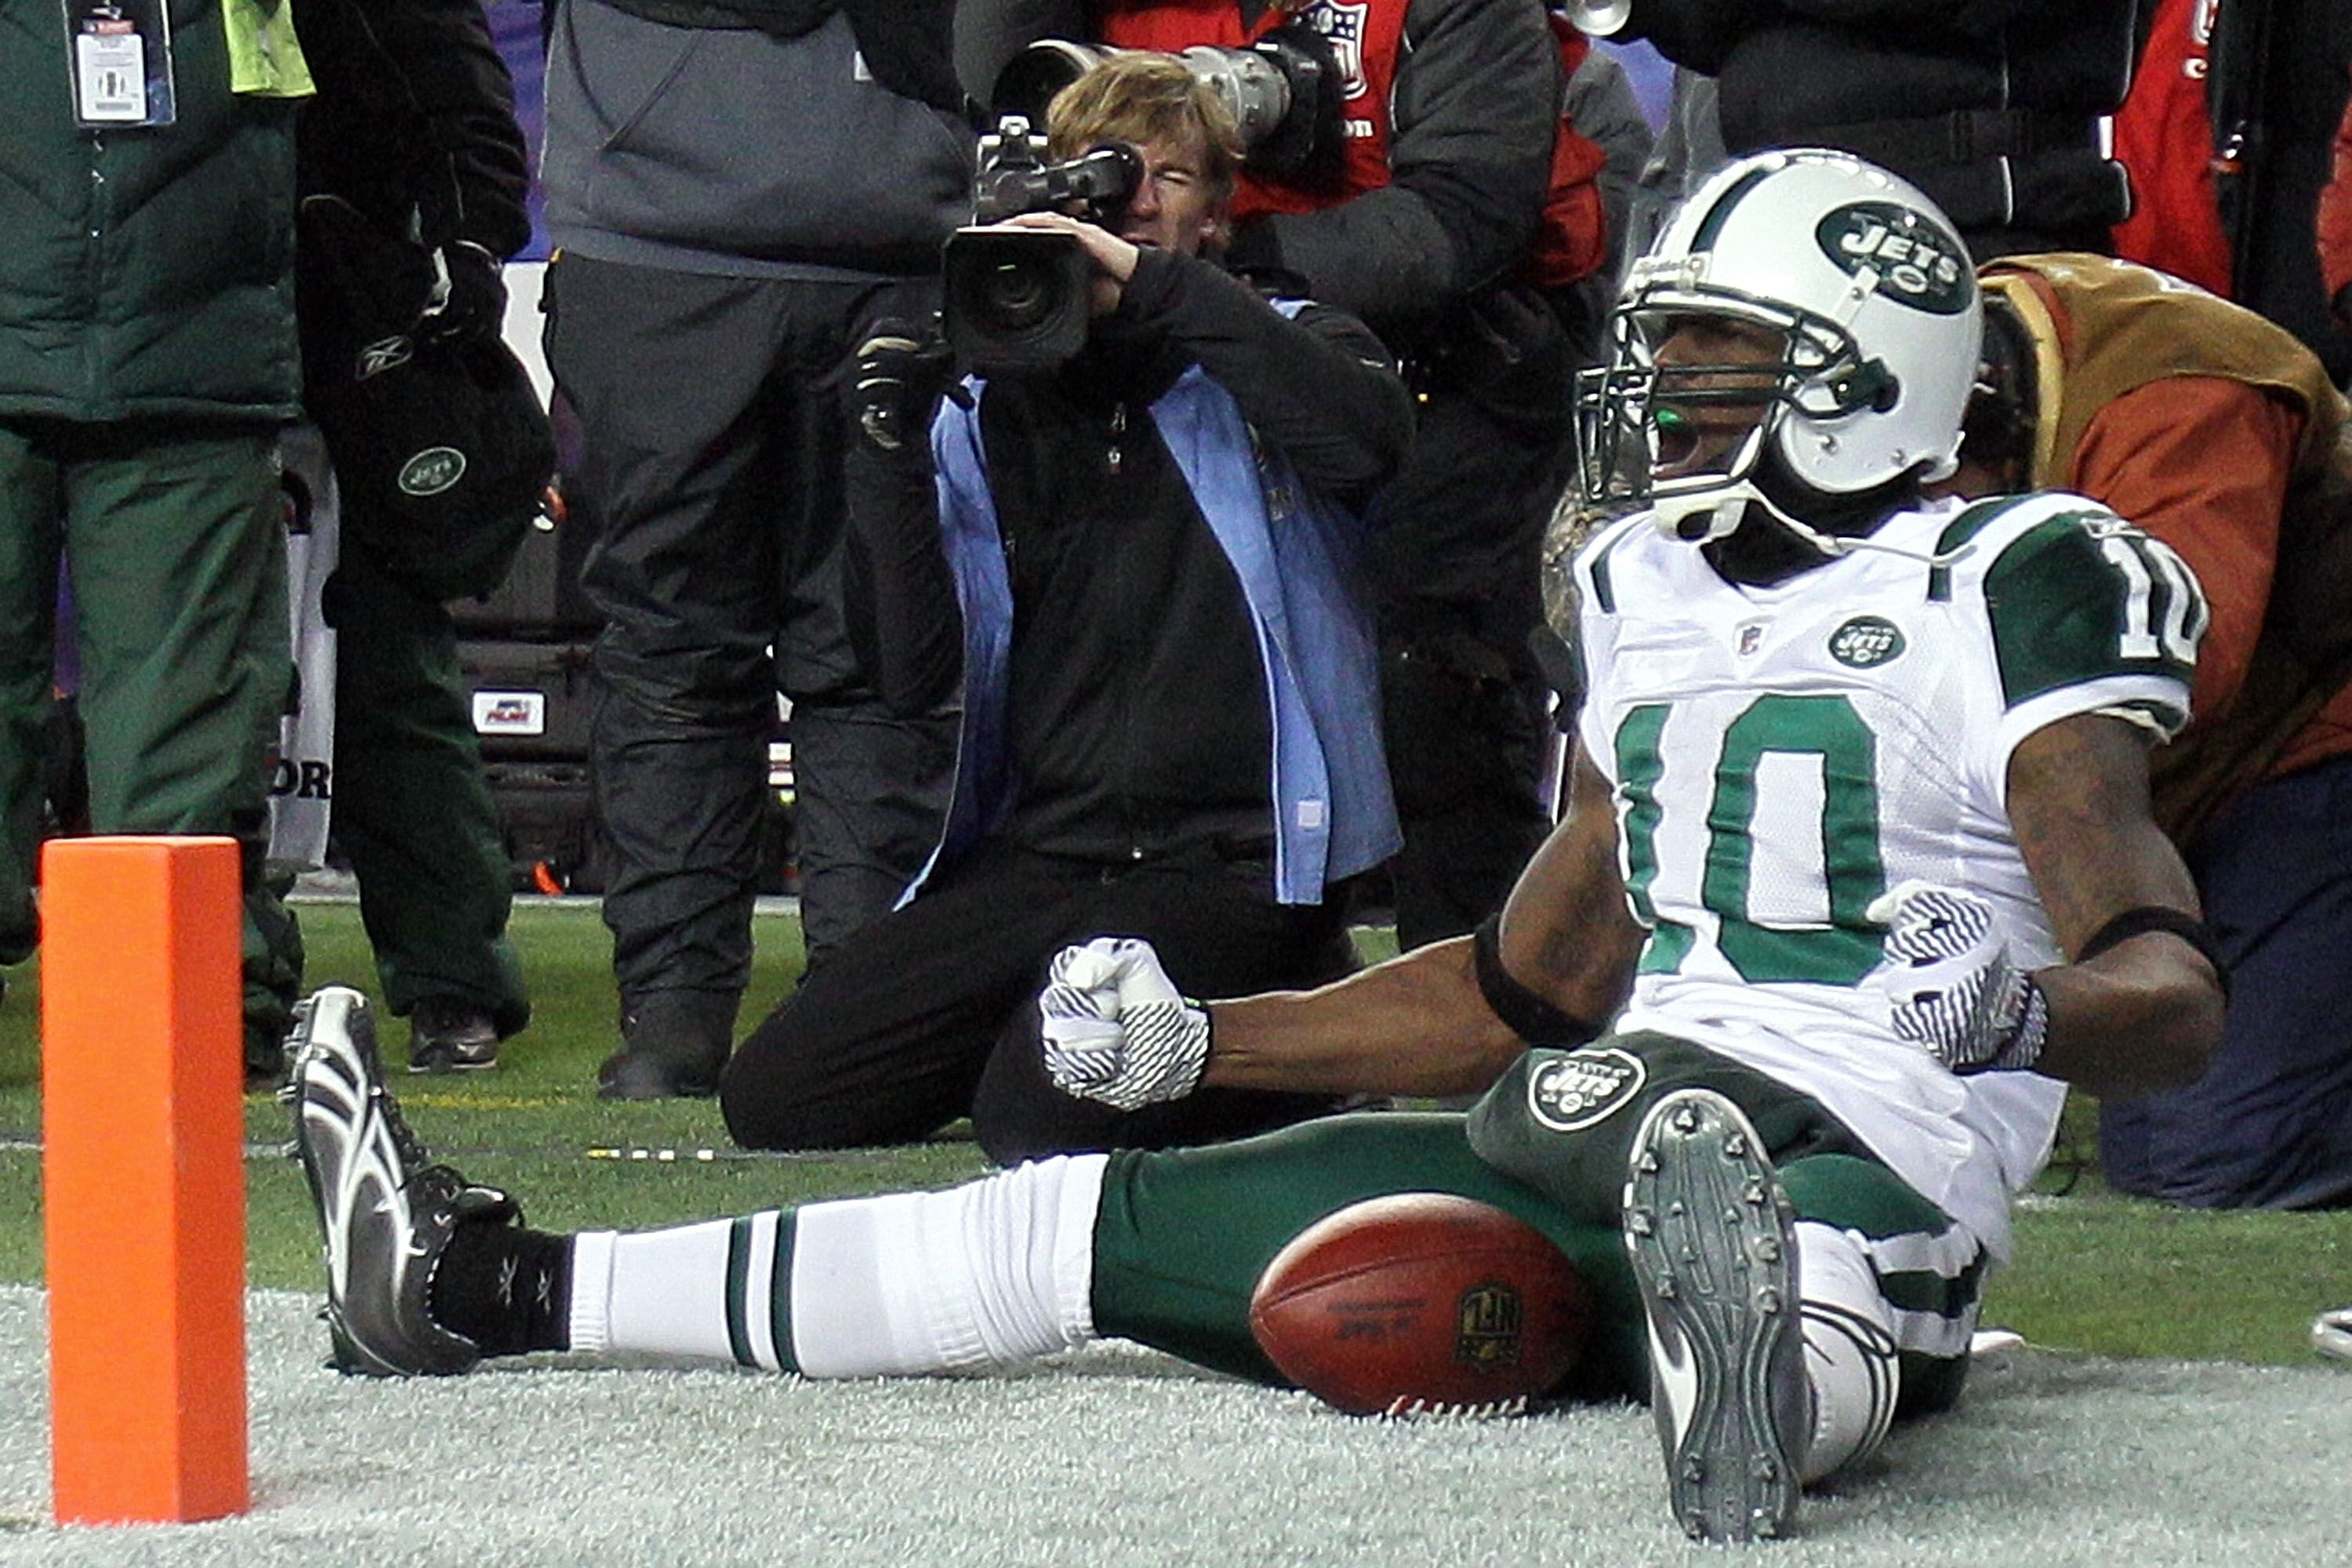 108078596-divisional-playoffs-new-york-jets-v-new-england-patriots.jpg